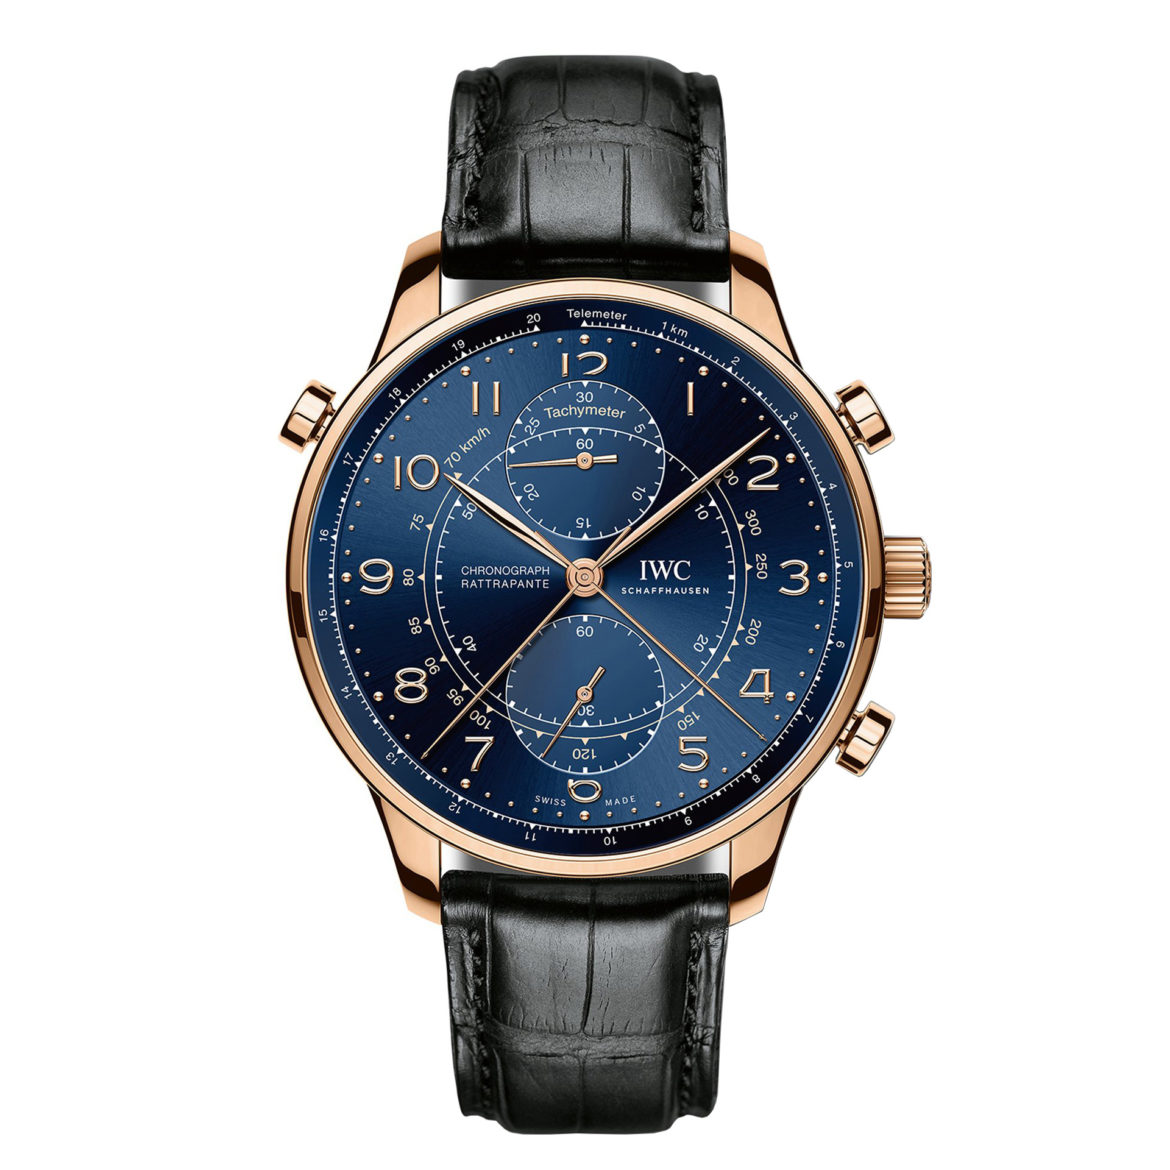 IWC Portugieser Chronograph Rattrapante Boutique Editions 2016